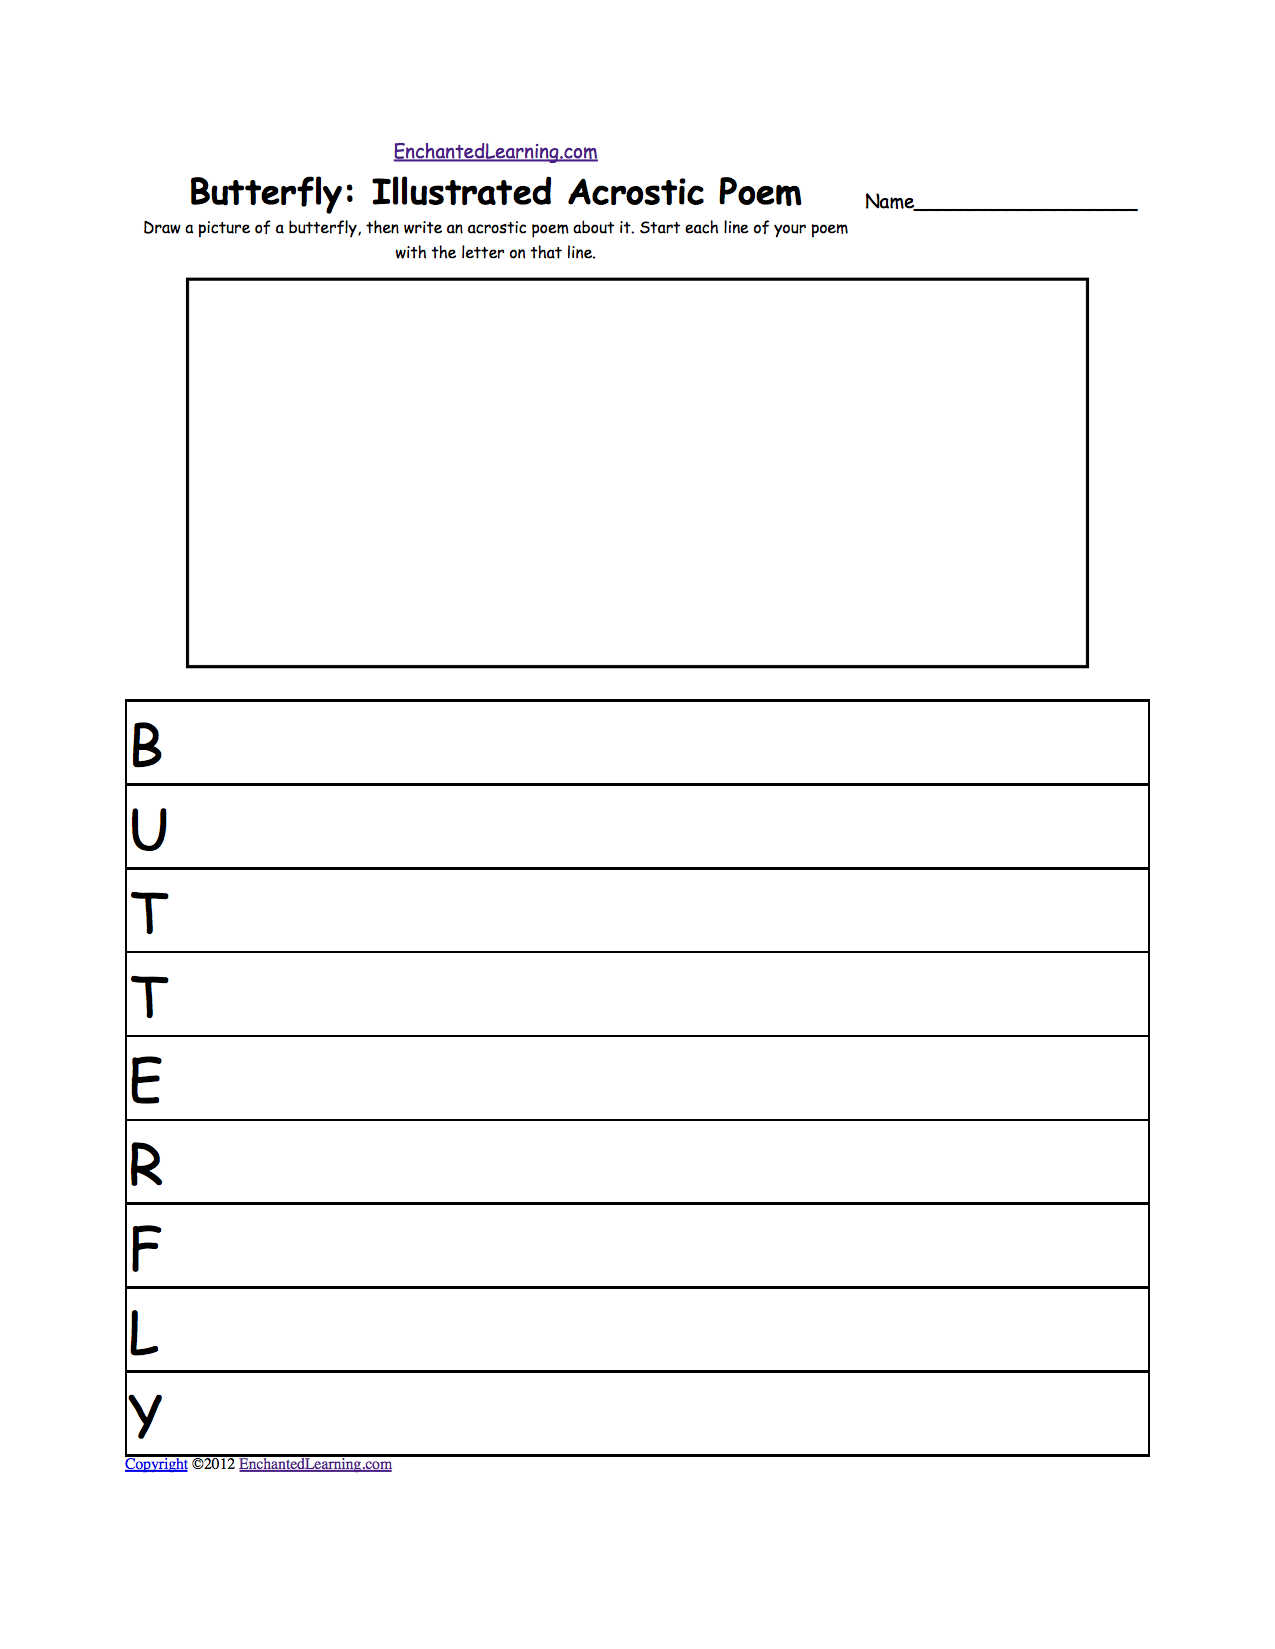 Worksheet Monarch Butterfly Worksheets butterflies at enchantedlearning com